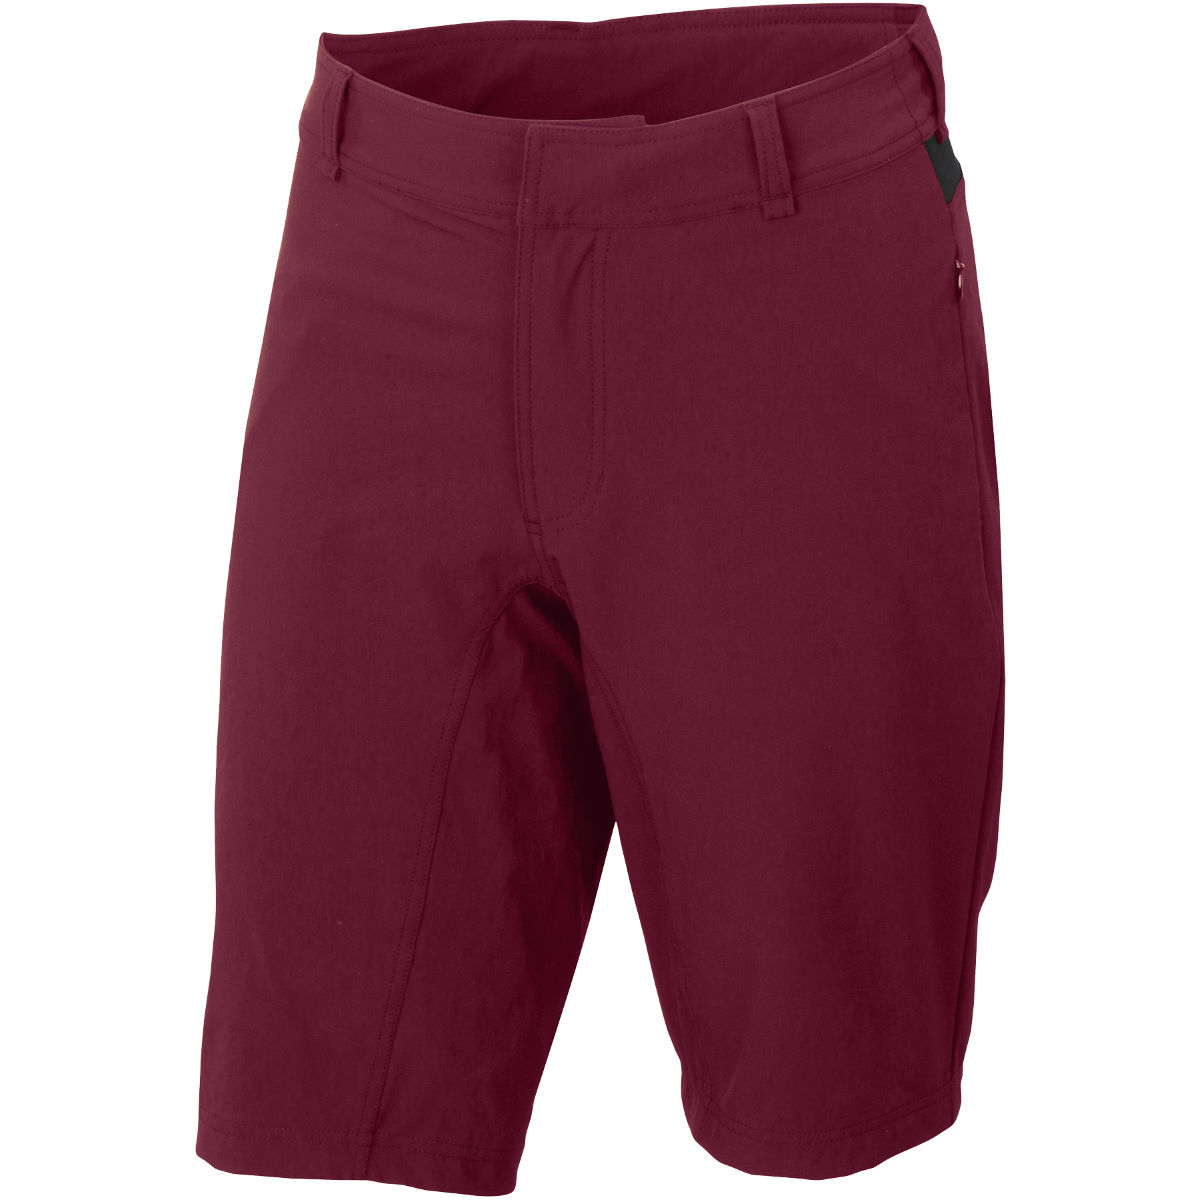 Sportful Giara Over Shorts - Xxl Red Wine  Baggy Shorts